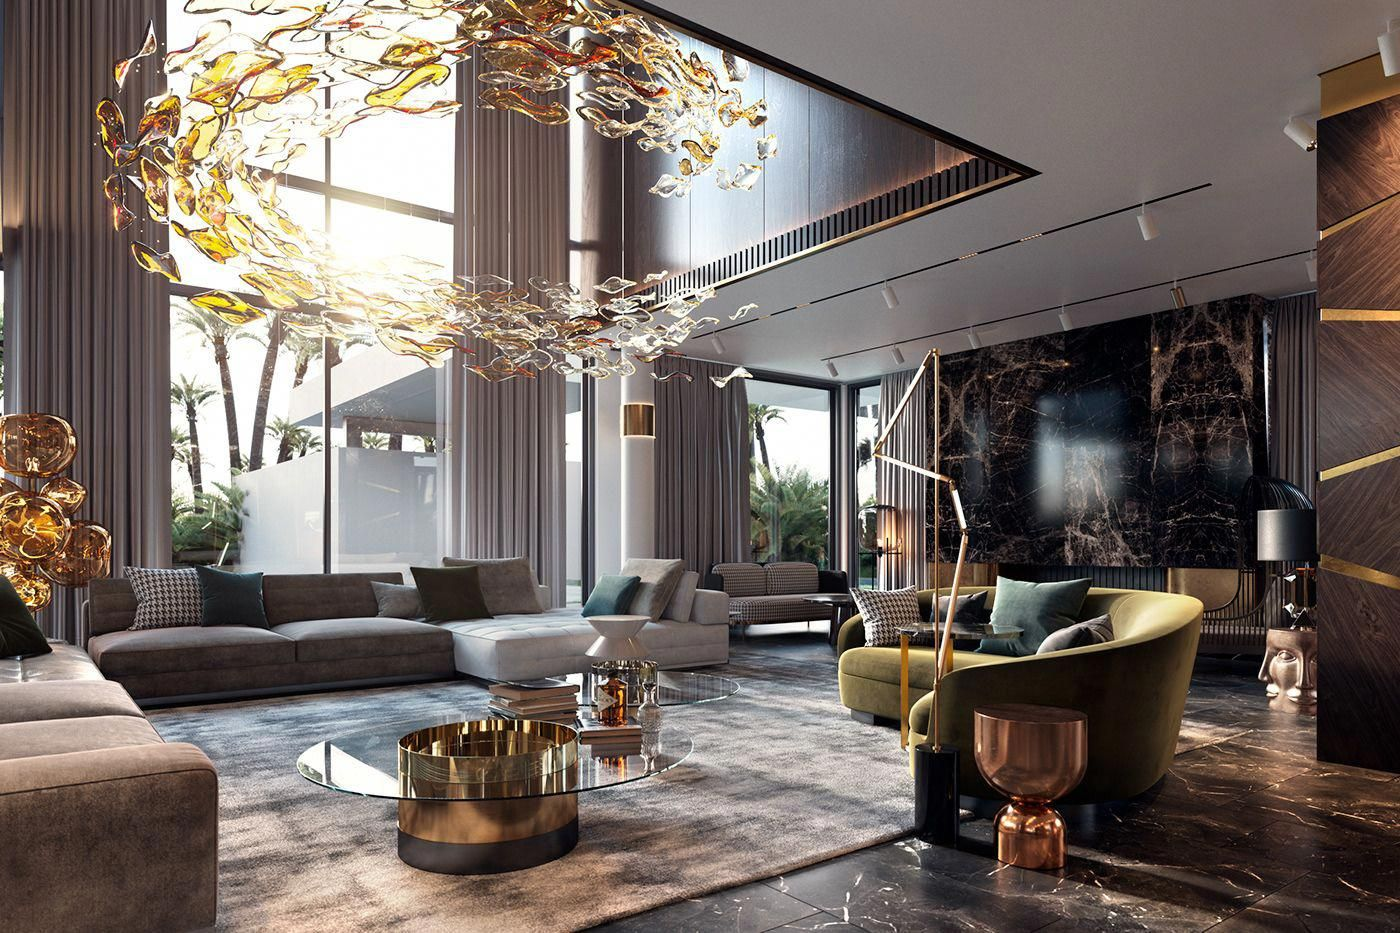 43 Up In Arms About Living Room Modern Contemporary Luxury